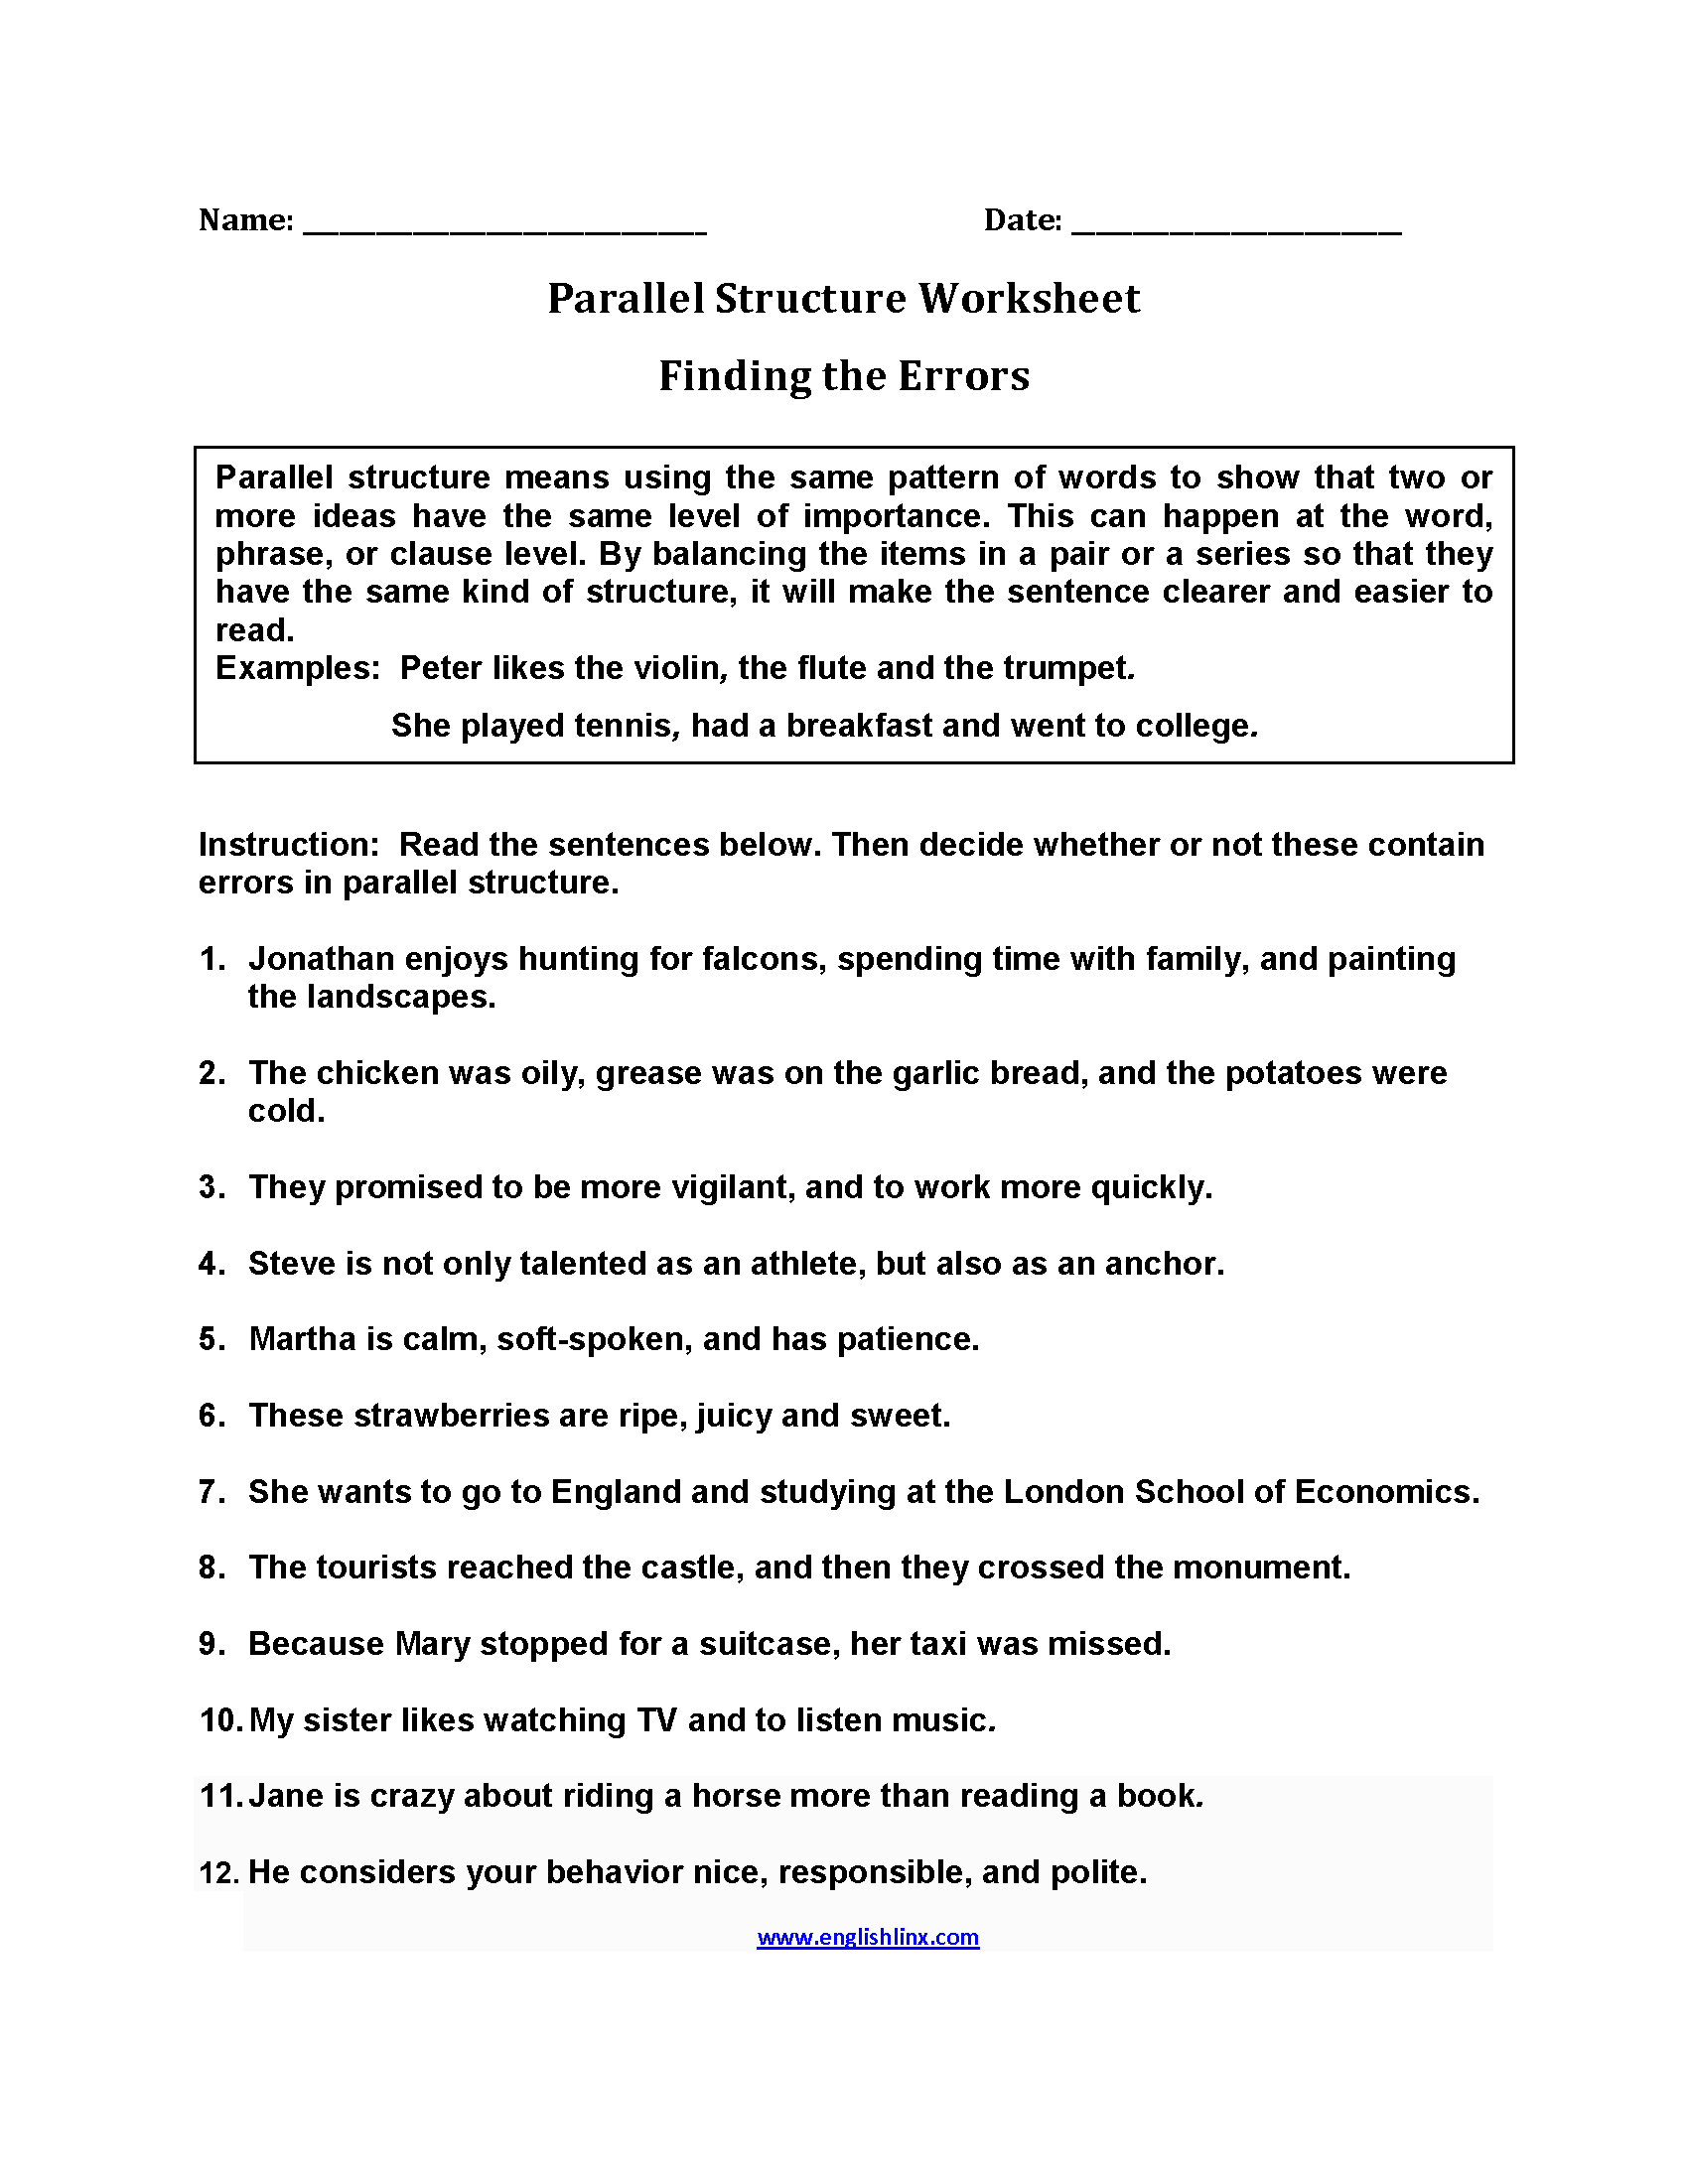 Parallel Structure Worksheet Finding The Errors